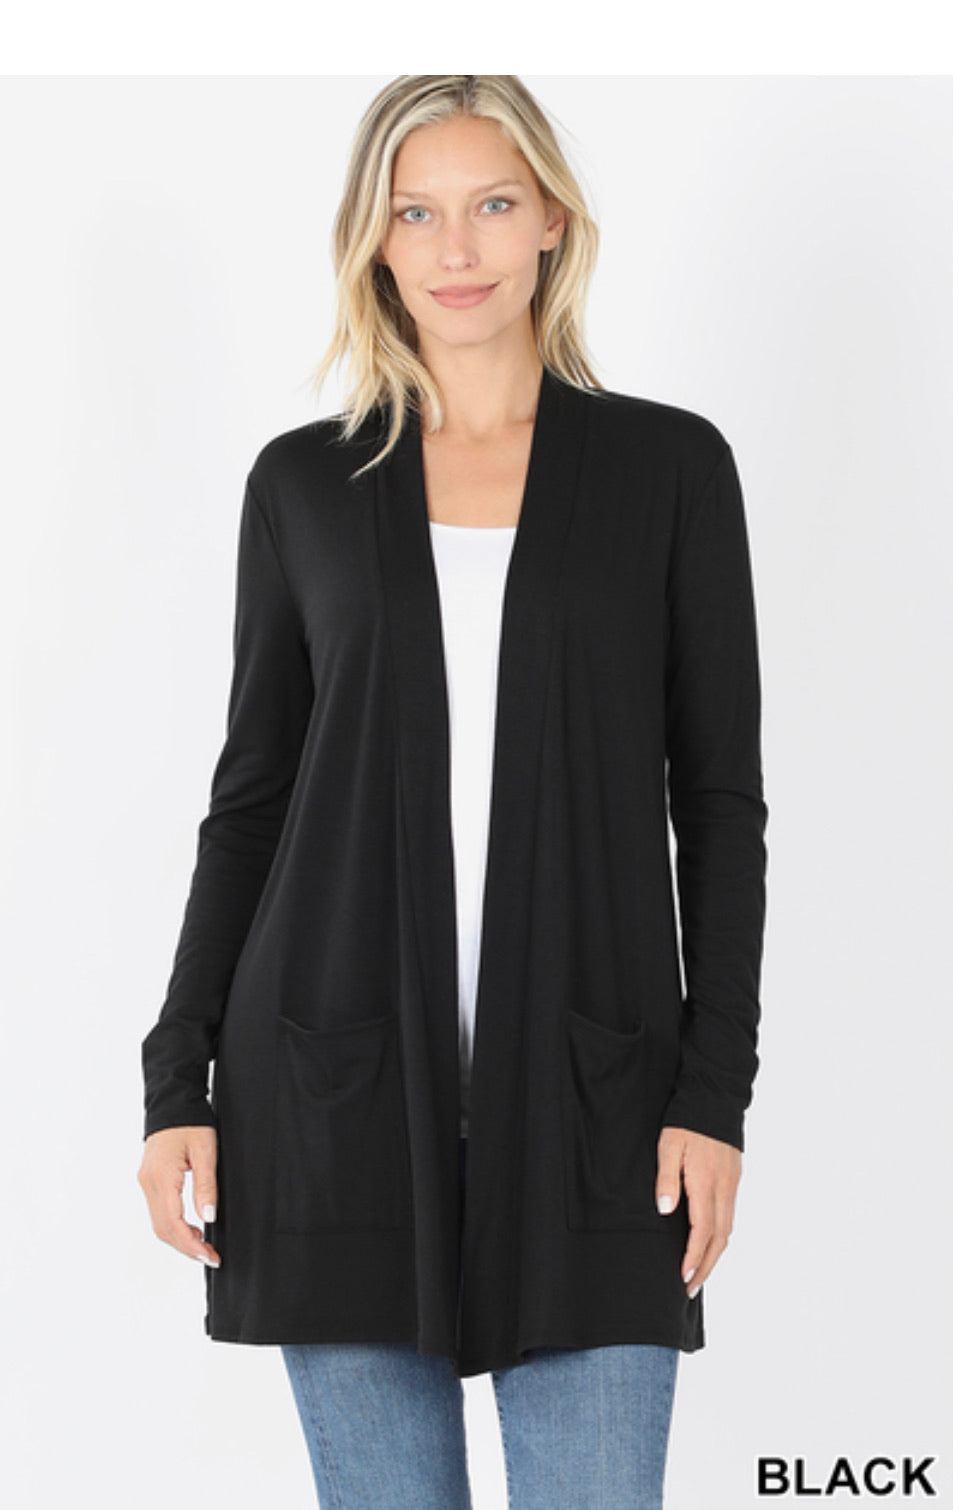 Chrissy Black Cardigan